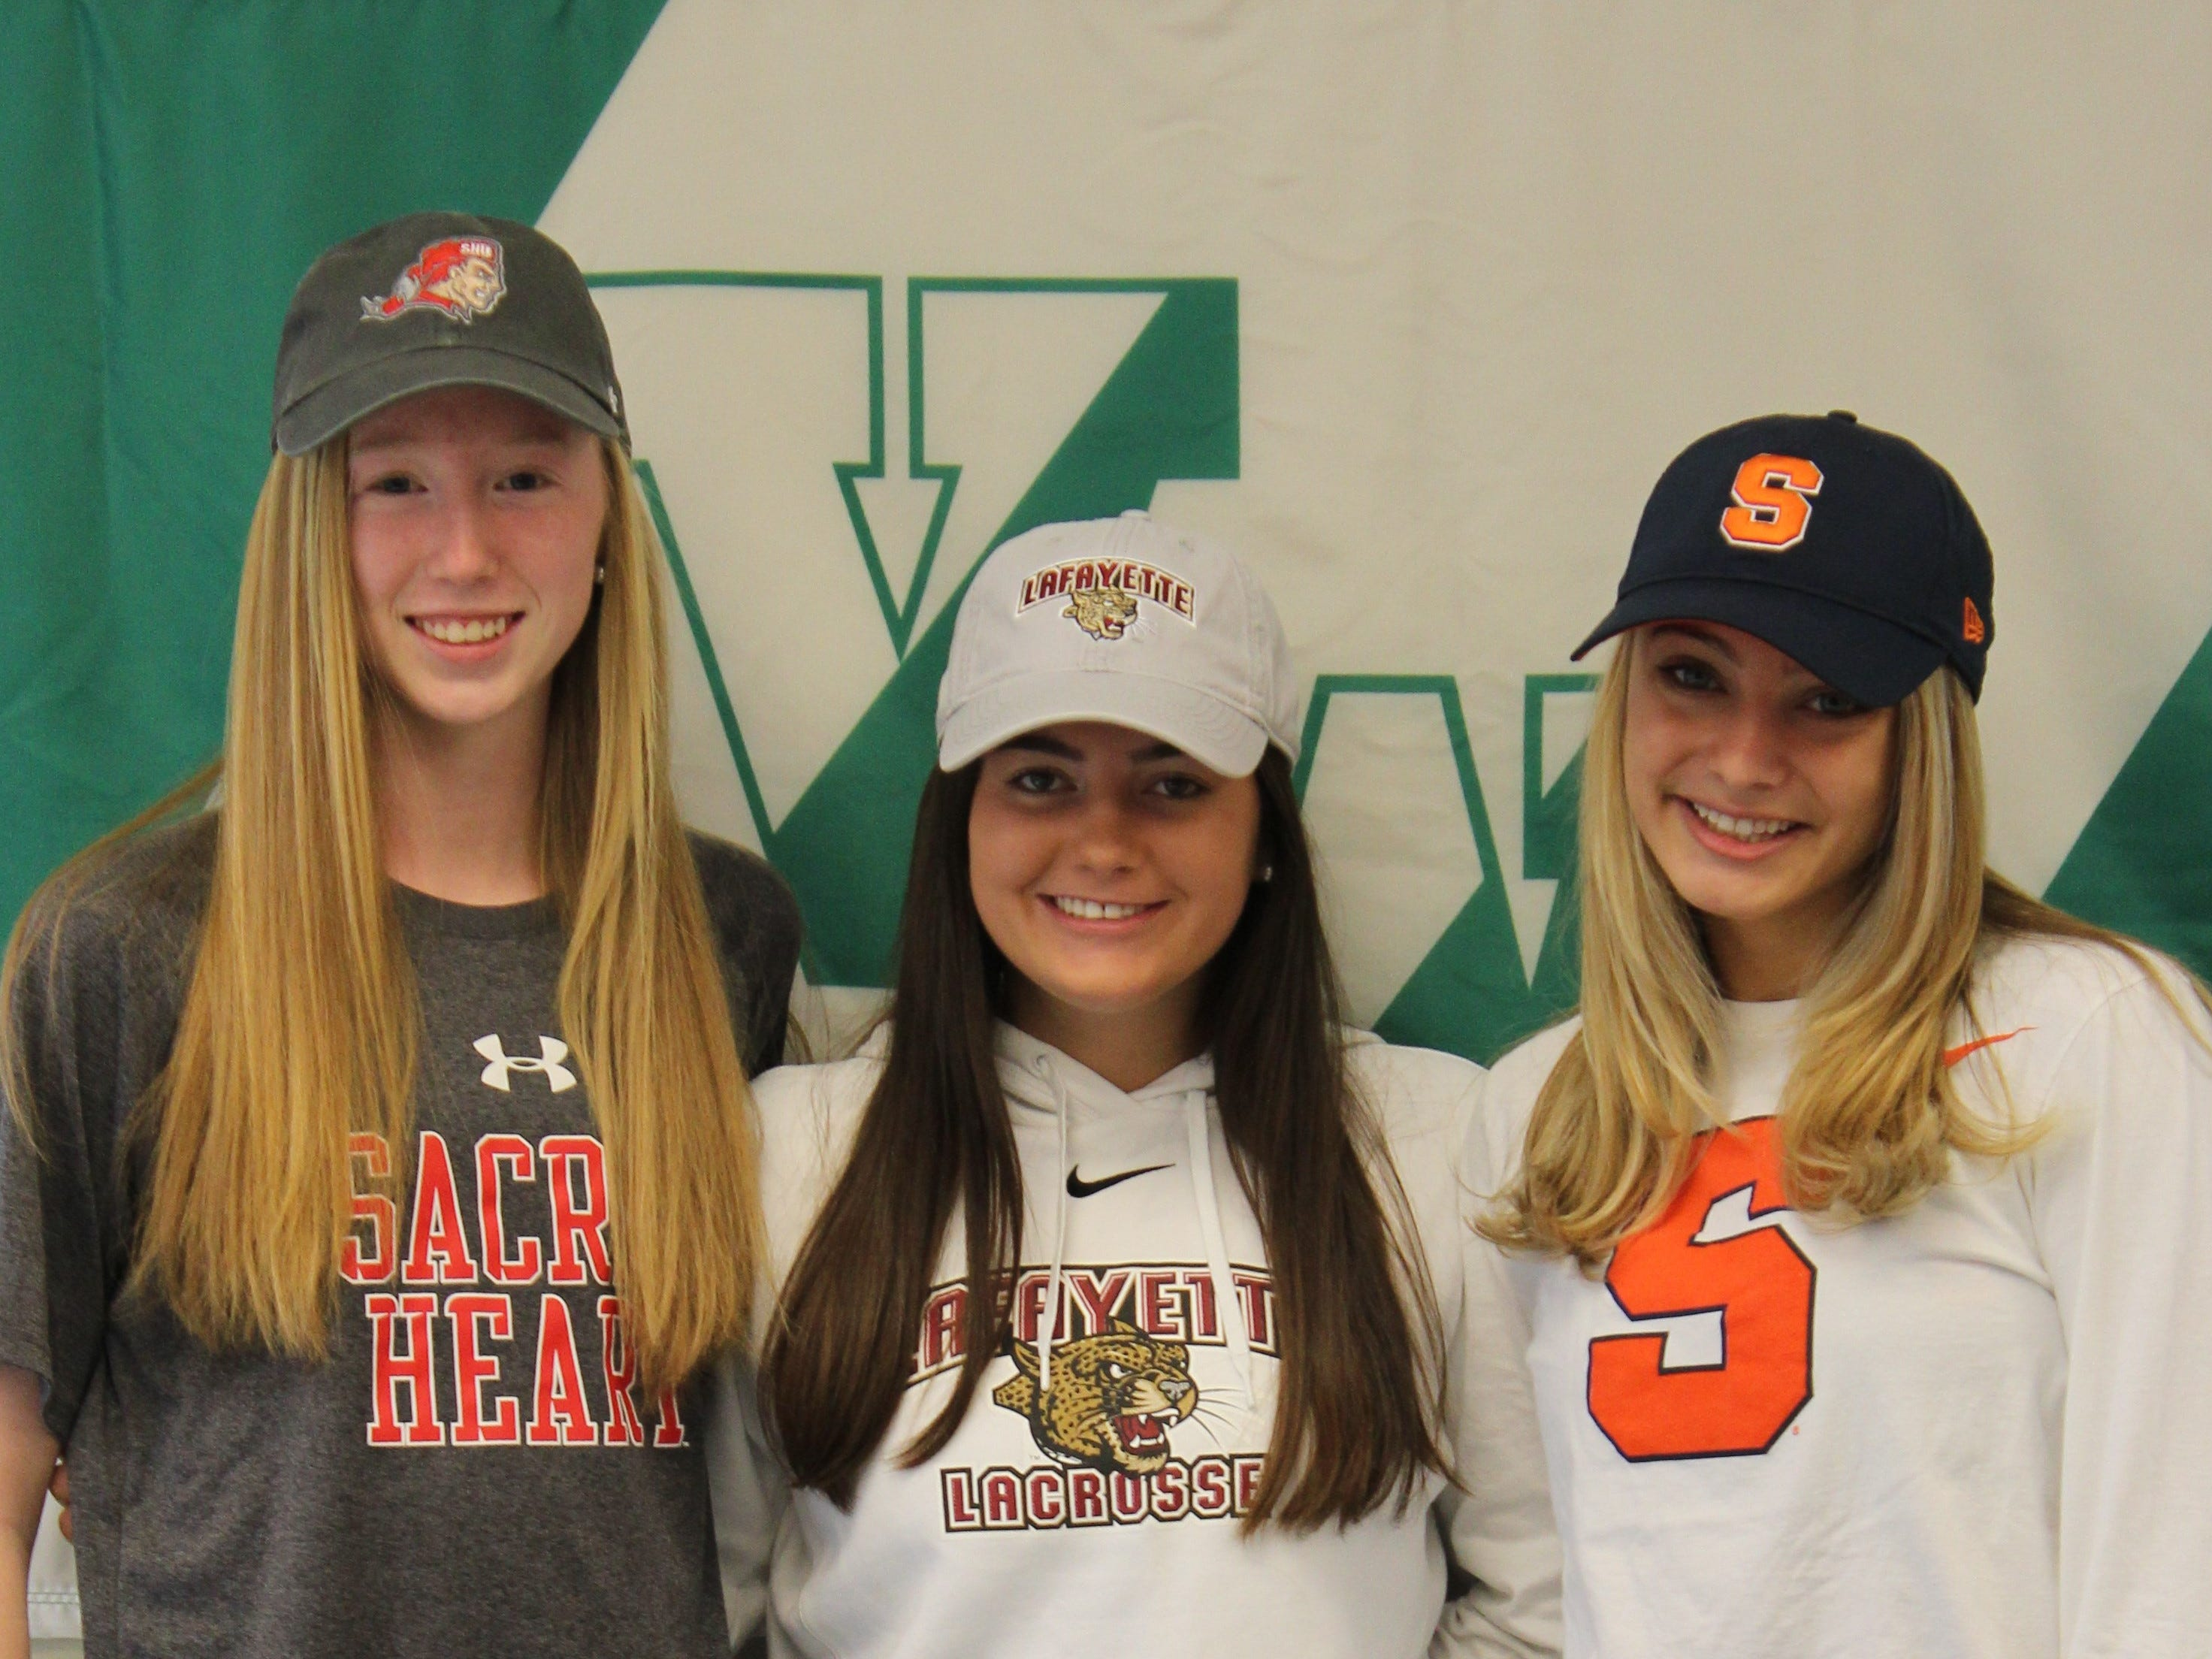 Villa Walsh seniors Meghan Sharkey (soccer), Maddie Colledge (lacrosse) and Gianna Villoresi (soccer) signed National Letters of Intent on Wednesday.